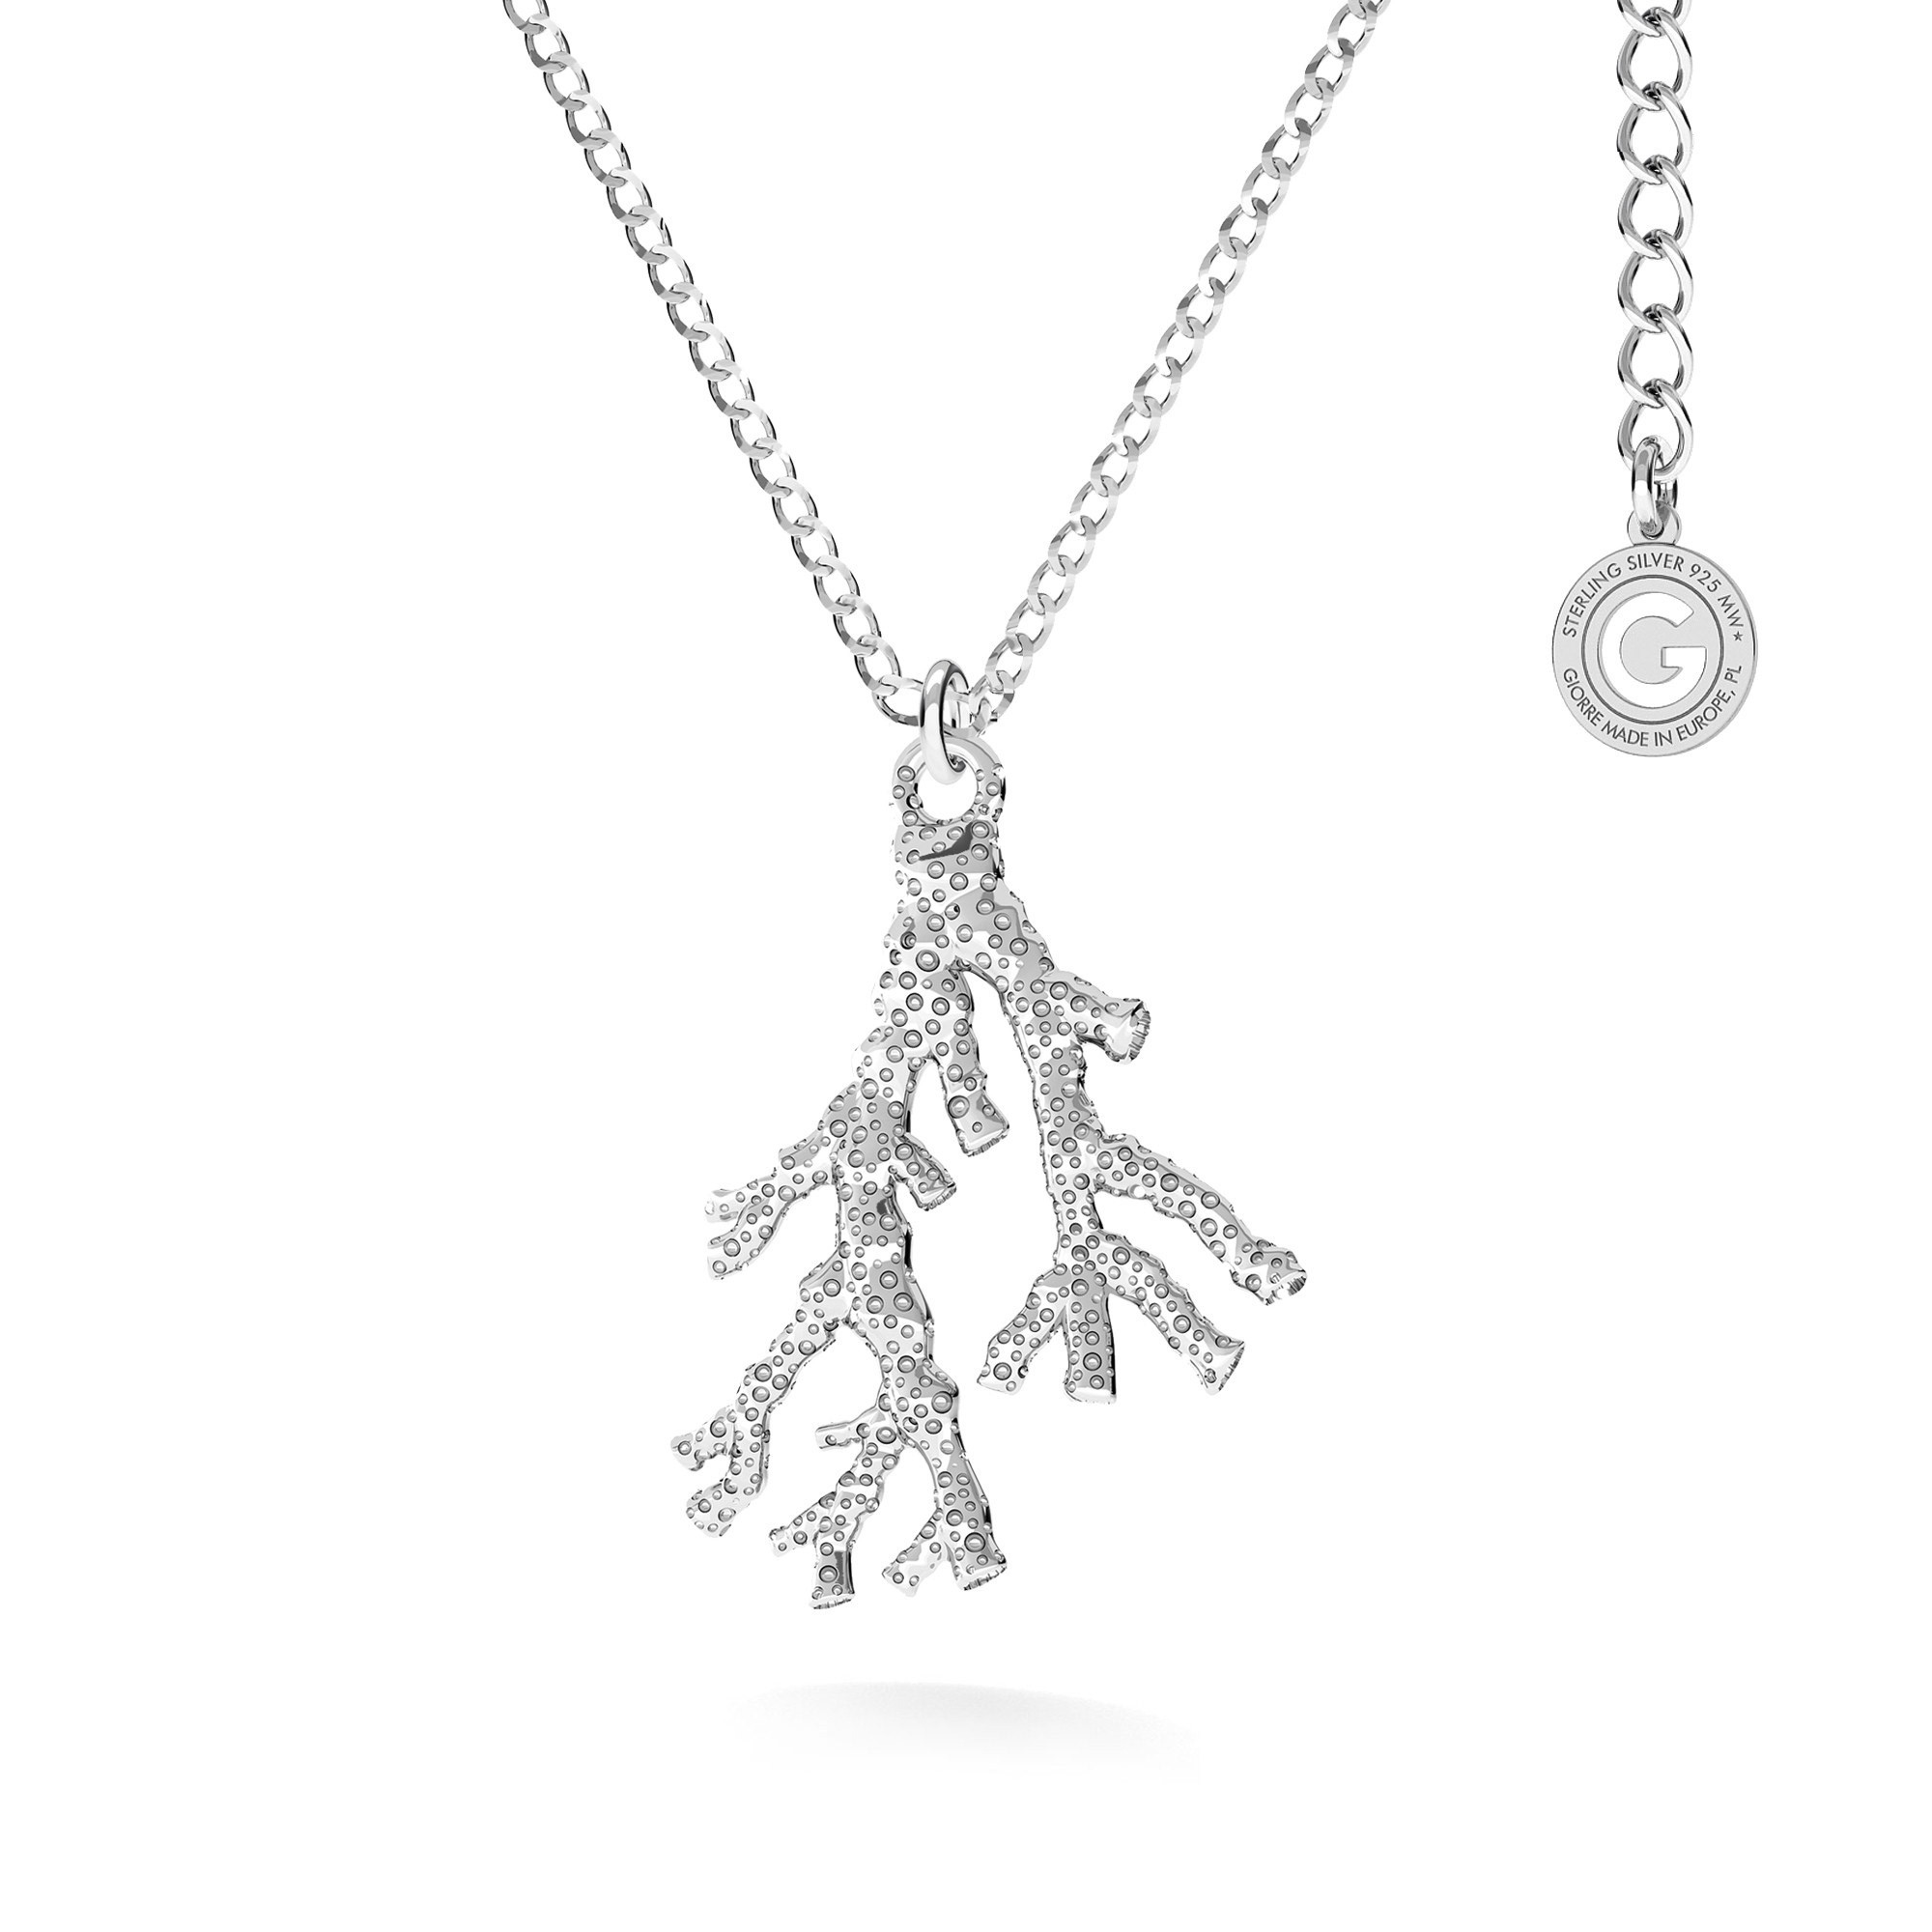 MON DÉFI Necklace - your name, sterling silver 925